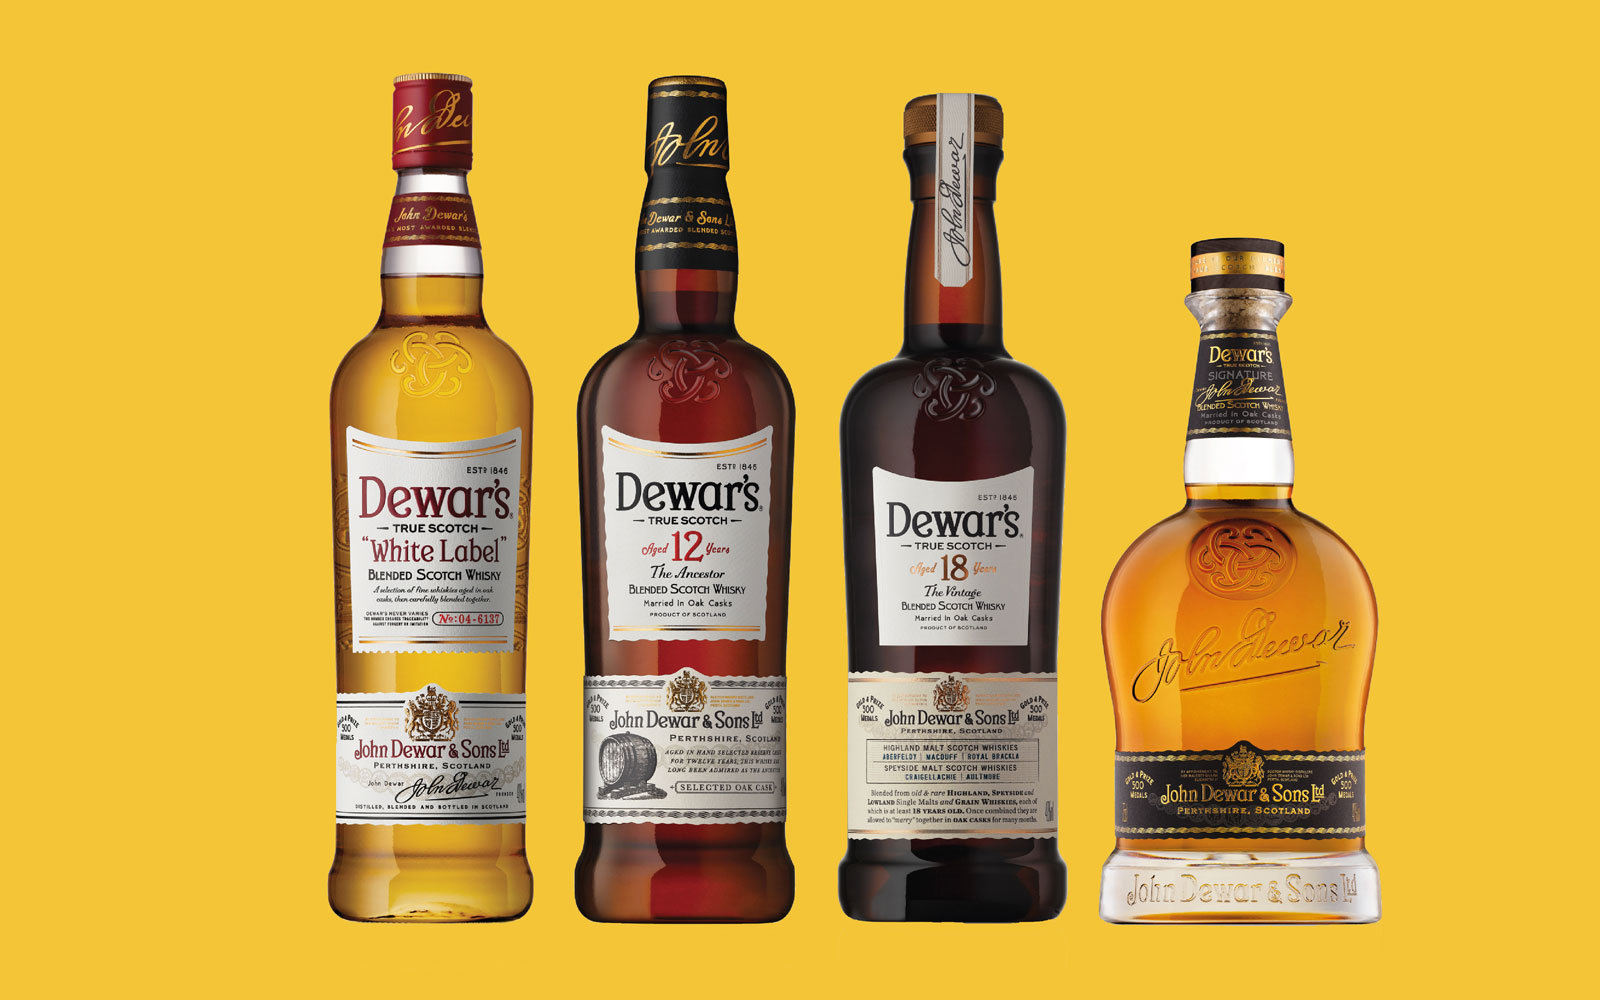 Cocktail Recipes with Dewar's Scotch